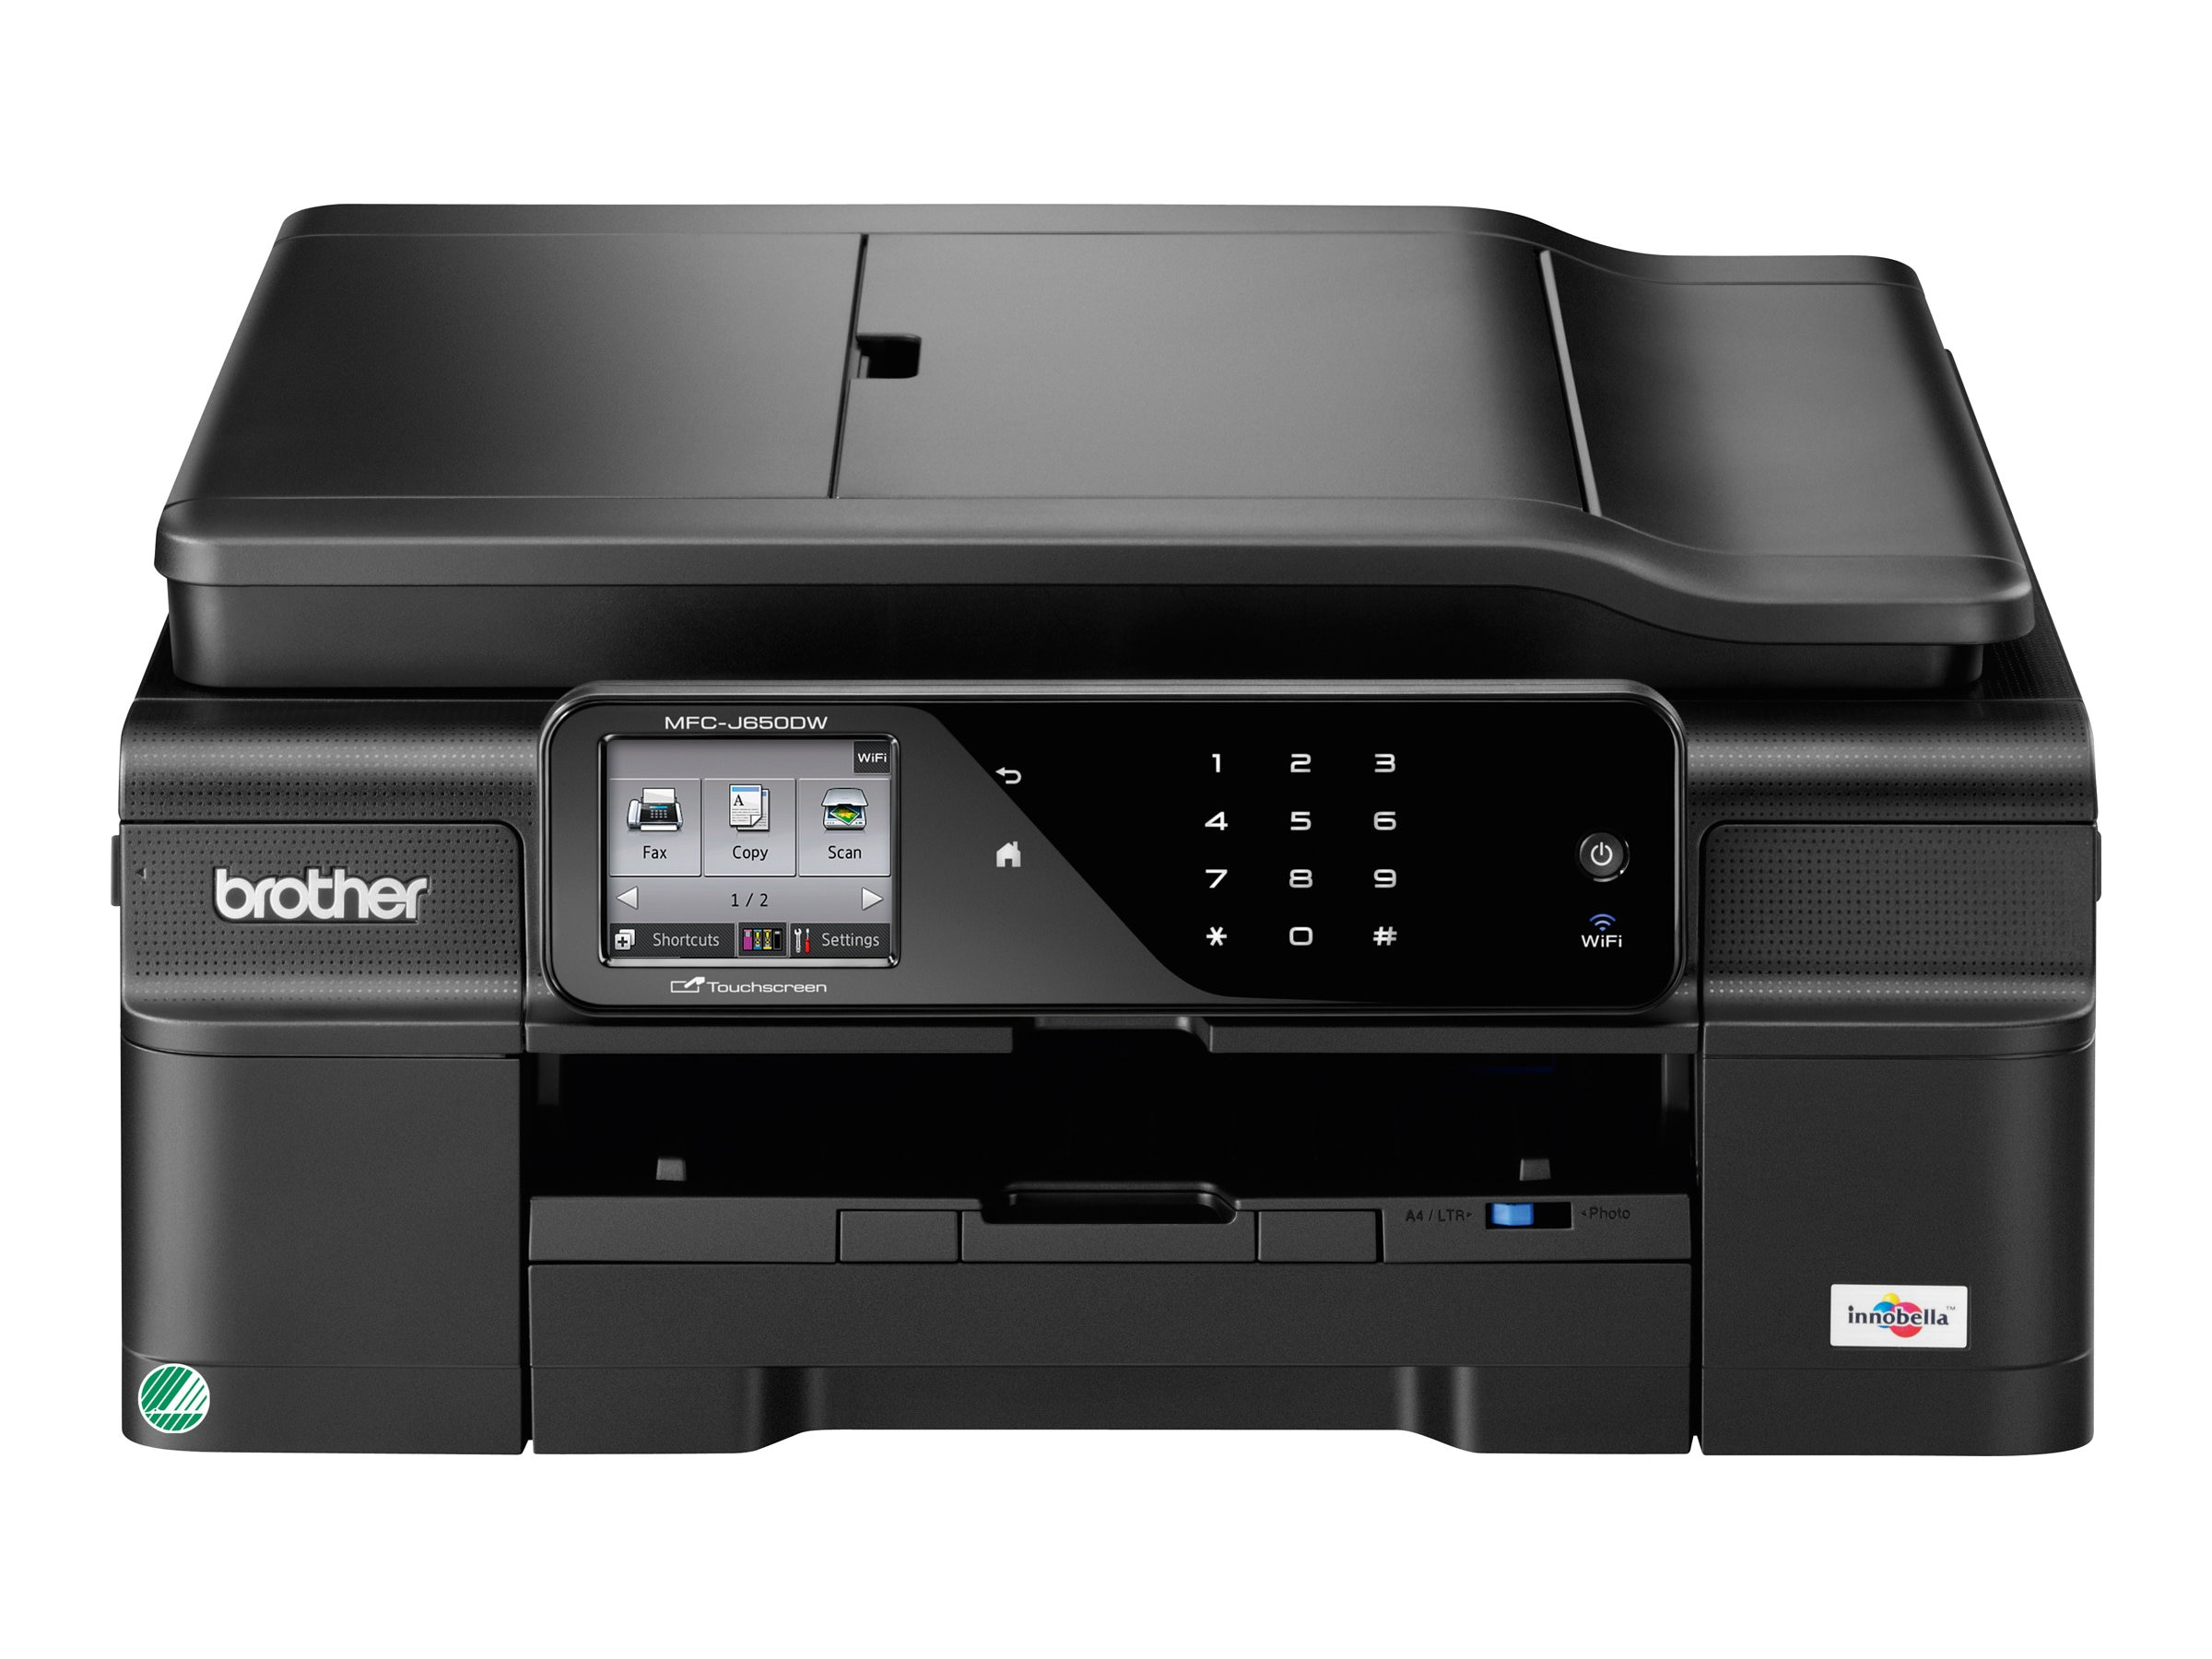 Brother MFC-J650DW Image 3